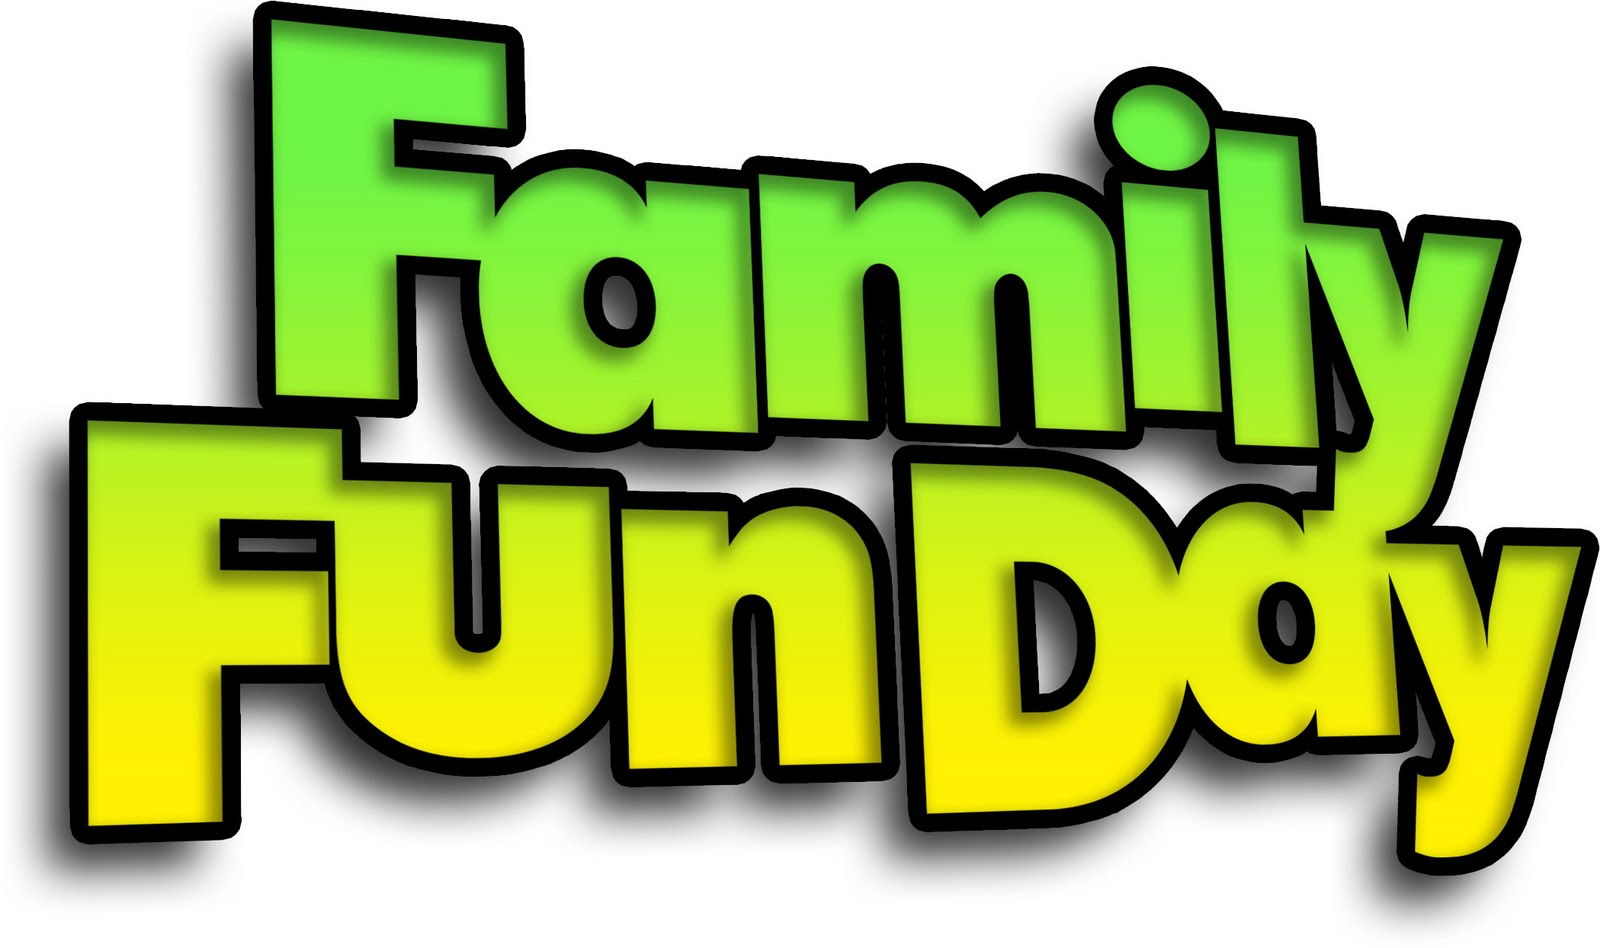 Family Day Clip Art - ClipArt Best - ClipArt Best